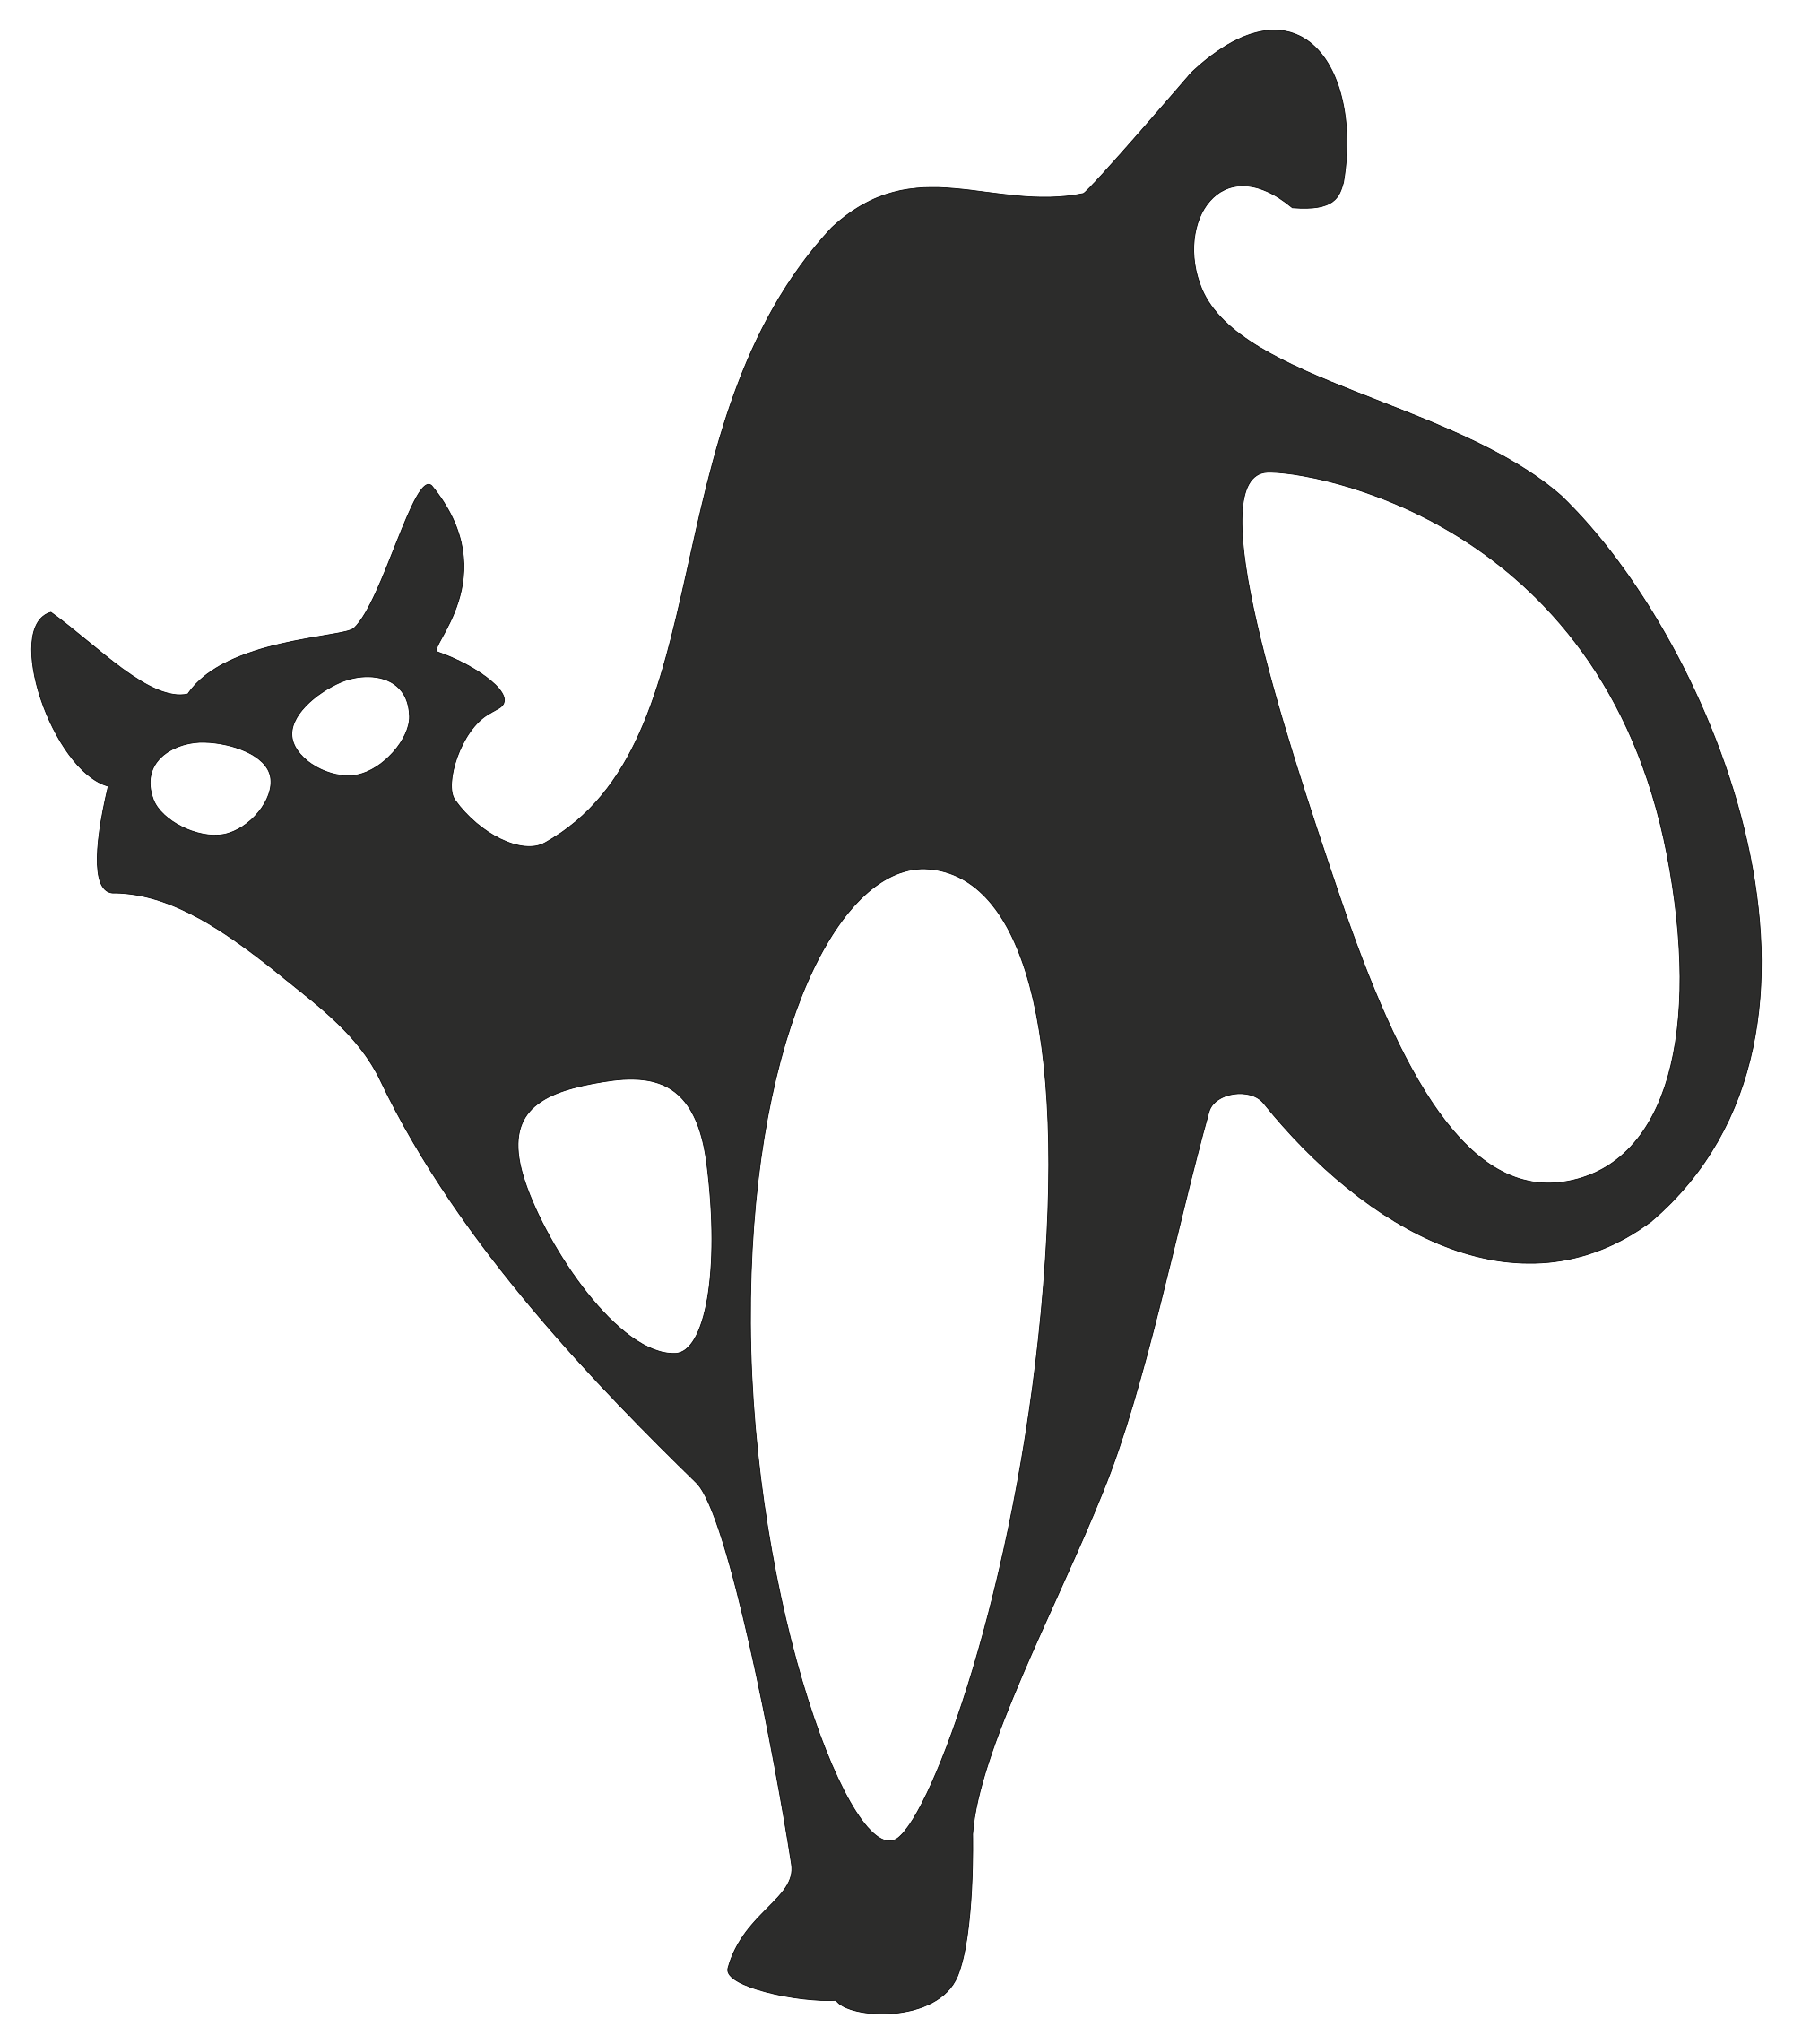 File:Black Cat.svg - Wikimedia Commons vector freeuse stock